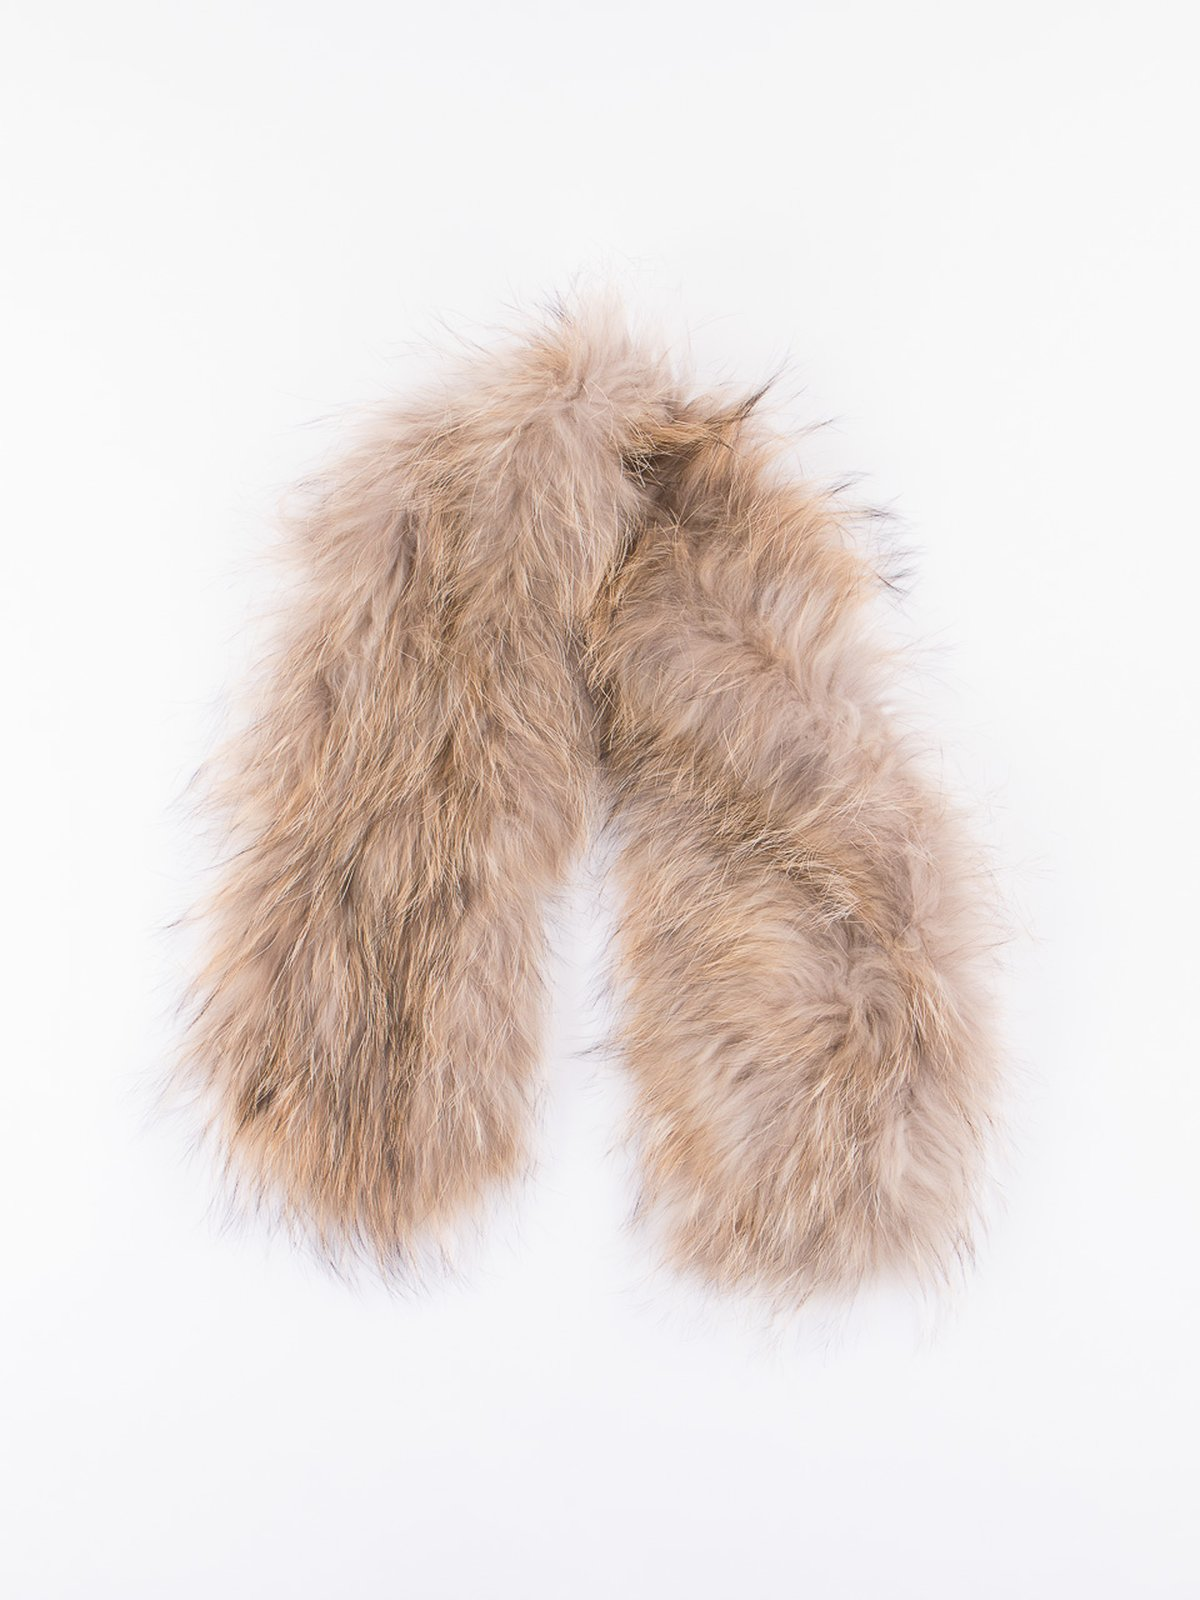 Gold Racoon Furling Coat Scarf - Image 1